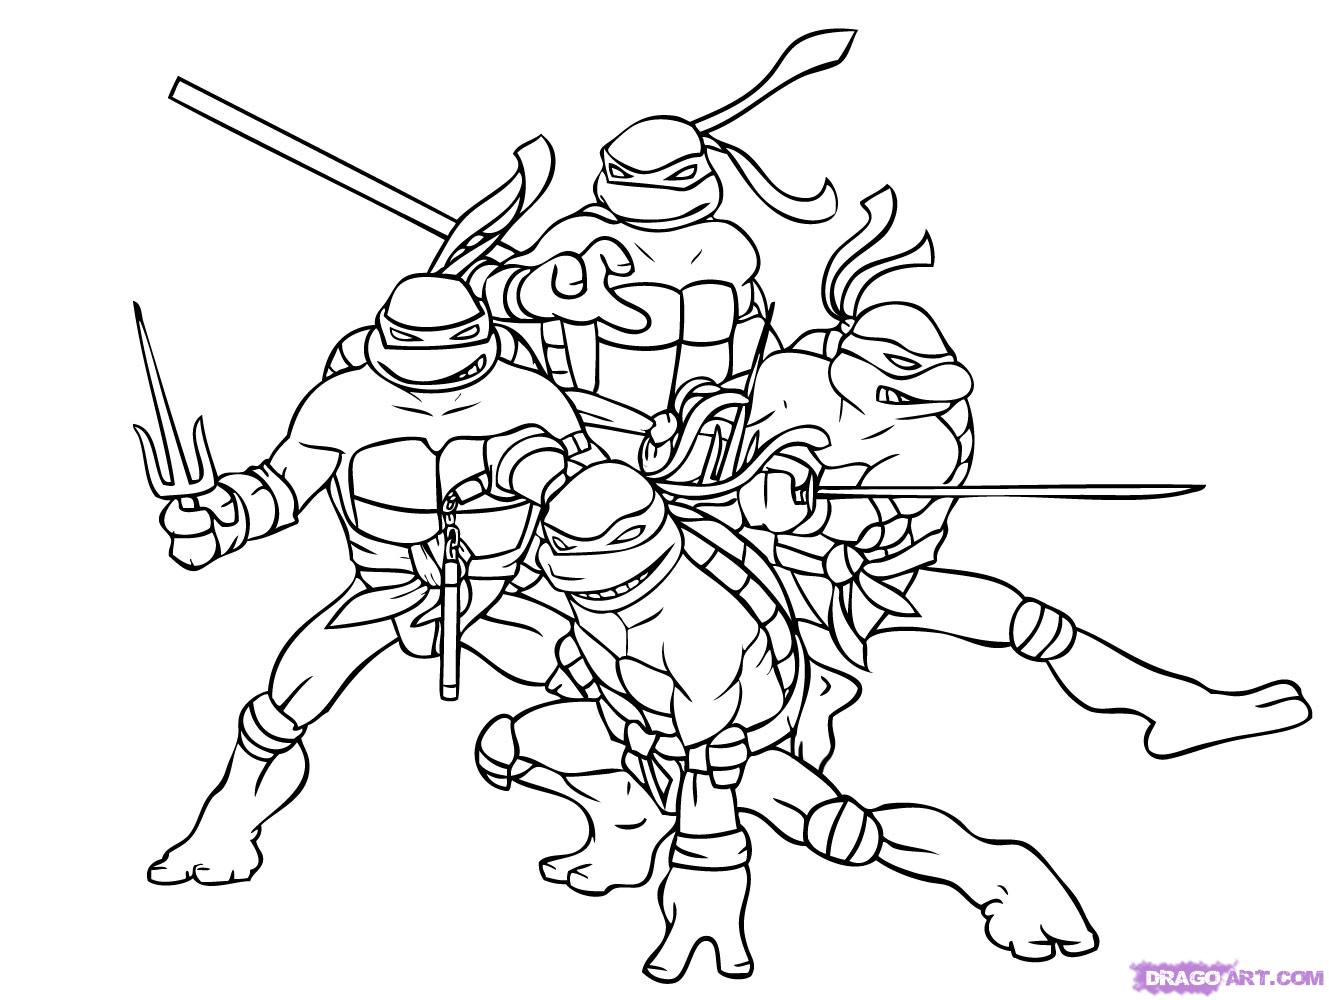 Printable Ninja Turtles Coloring Pages - Coloring Home